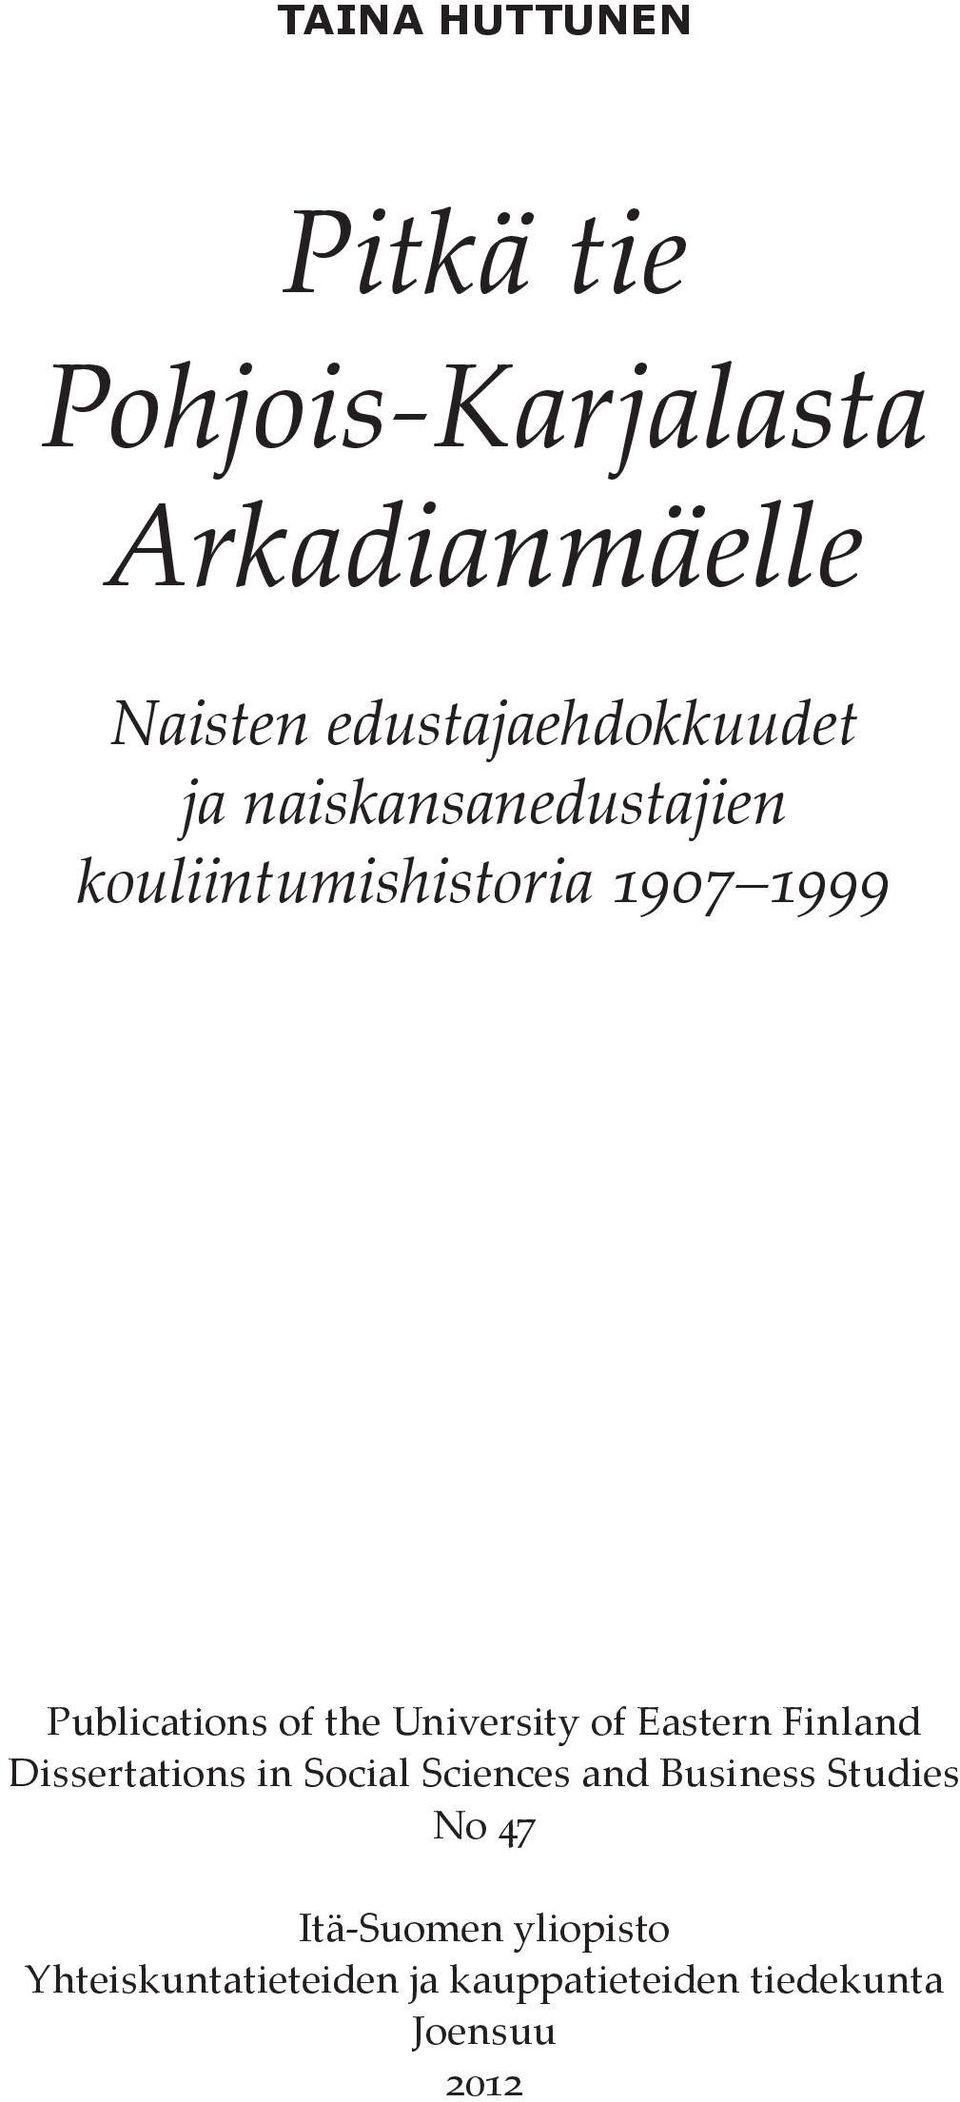 Publications of the University of Eastern Finland Dissertations in Social Sciences